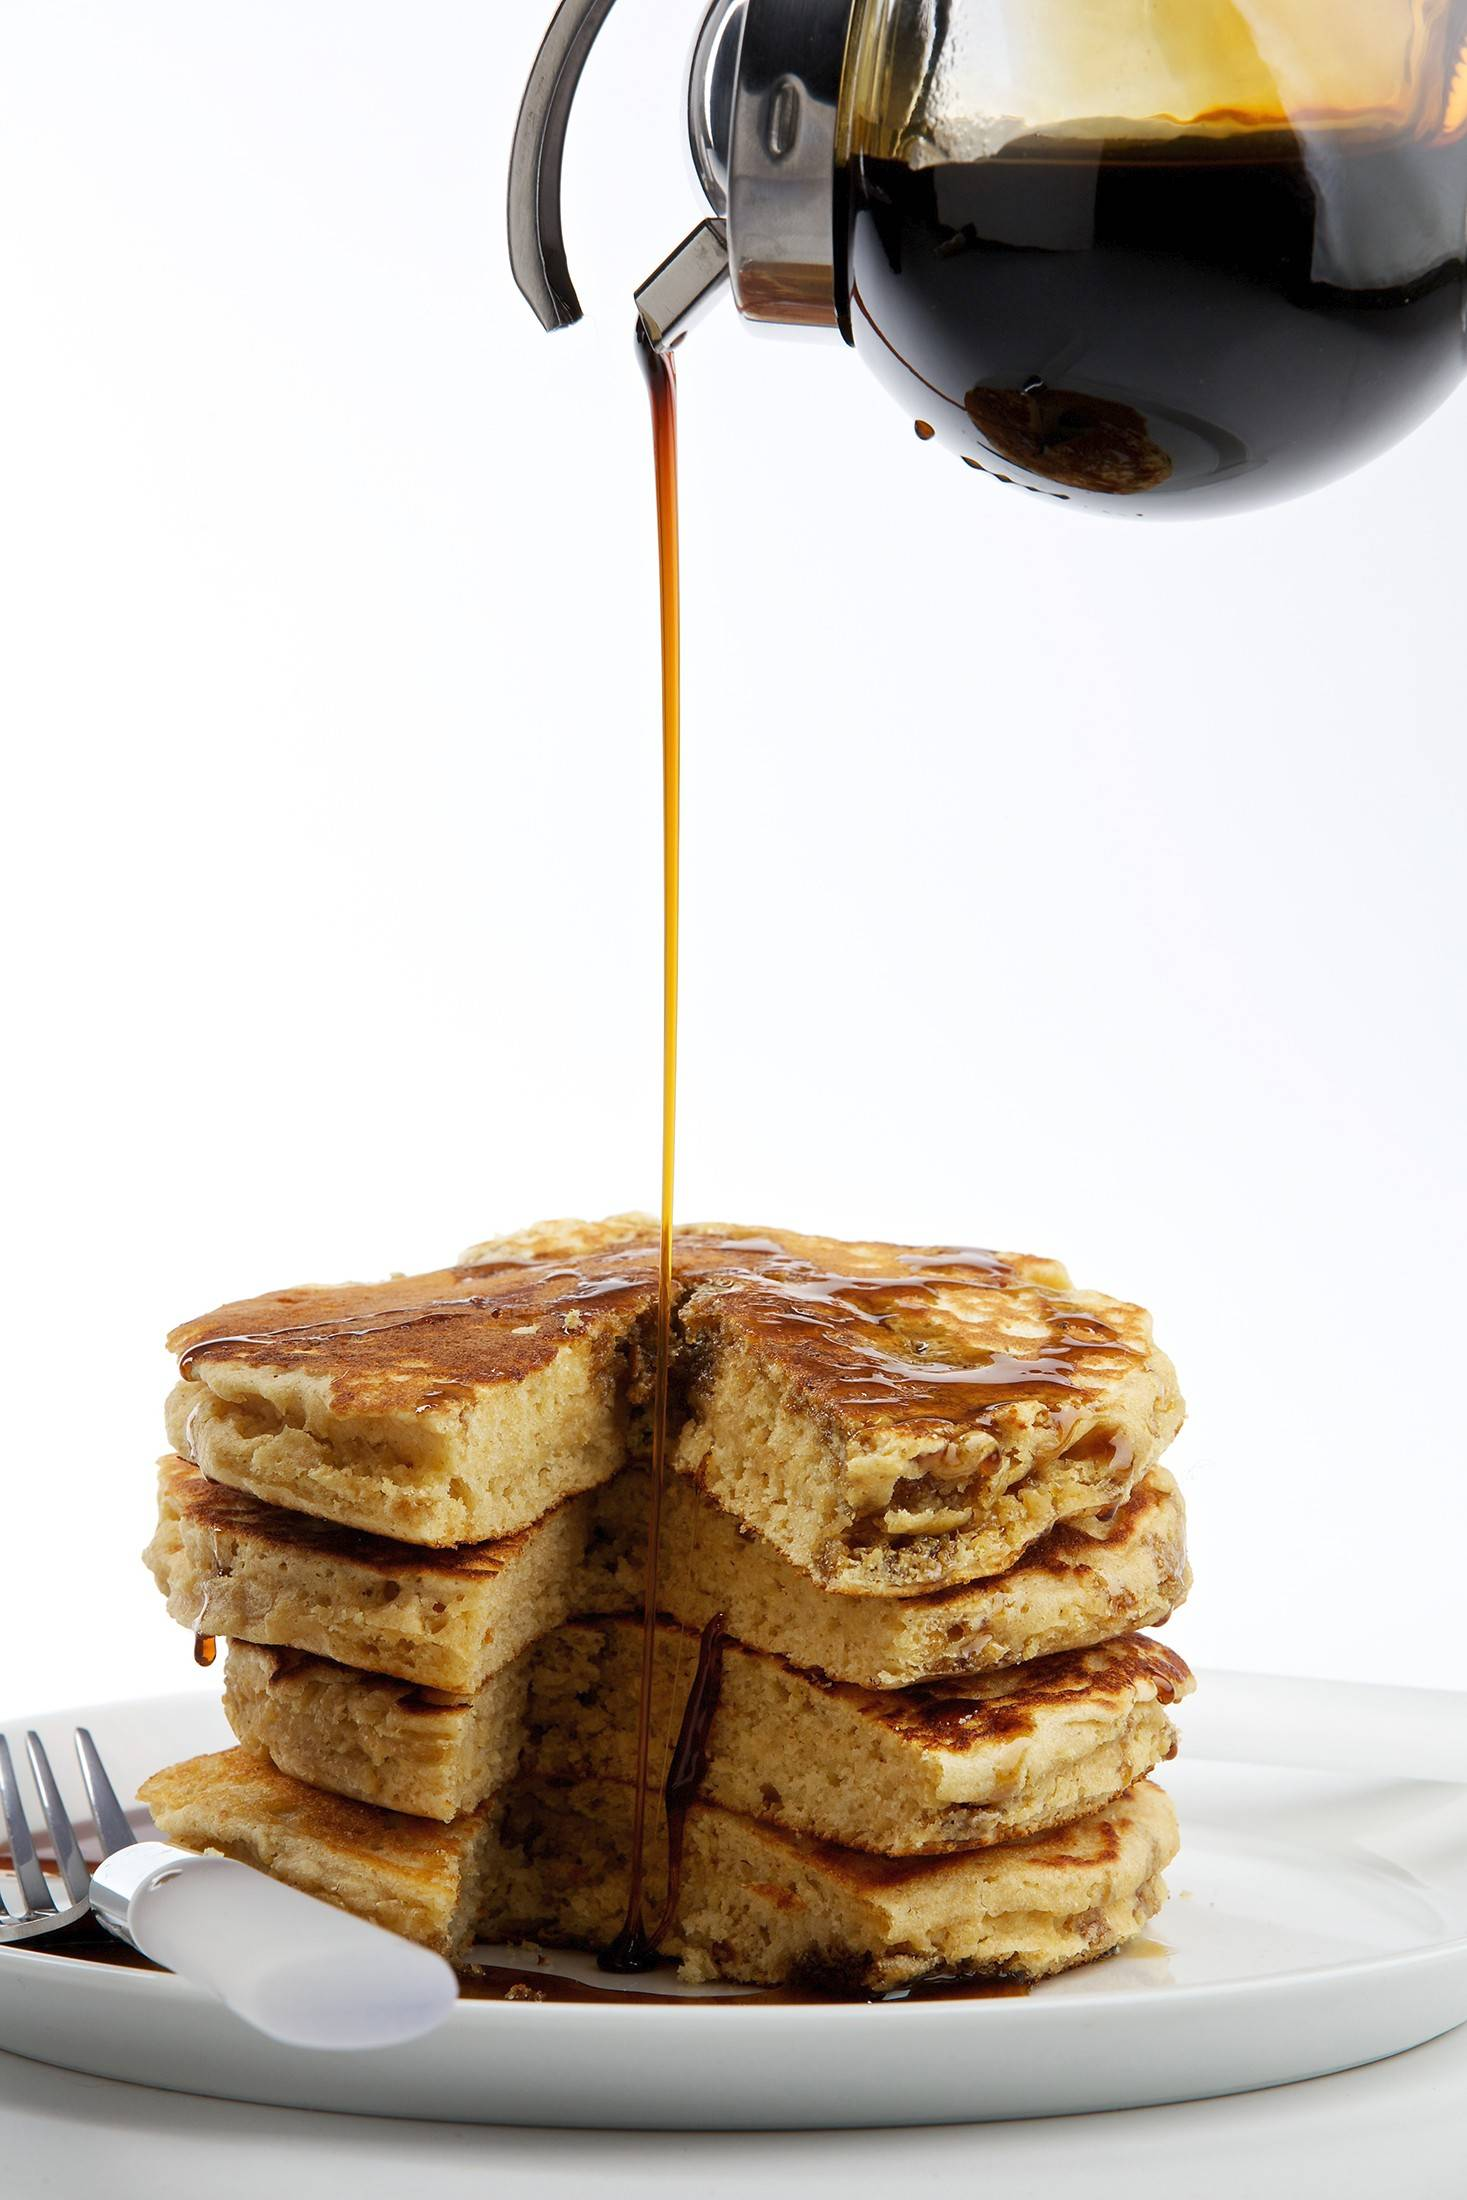 New flour, homemade syrups add up to pancake perfection